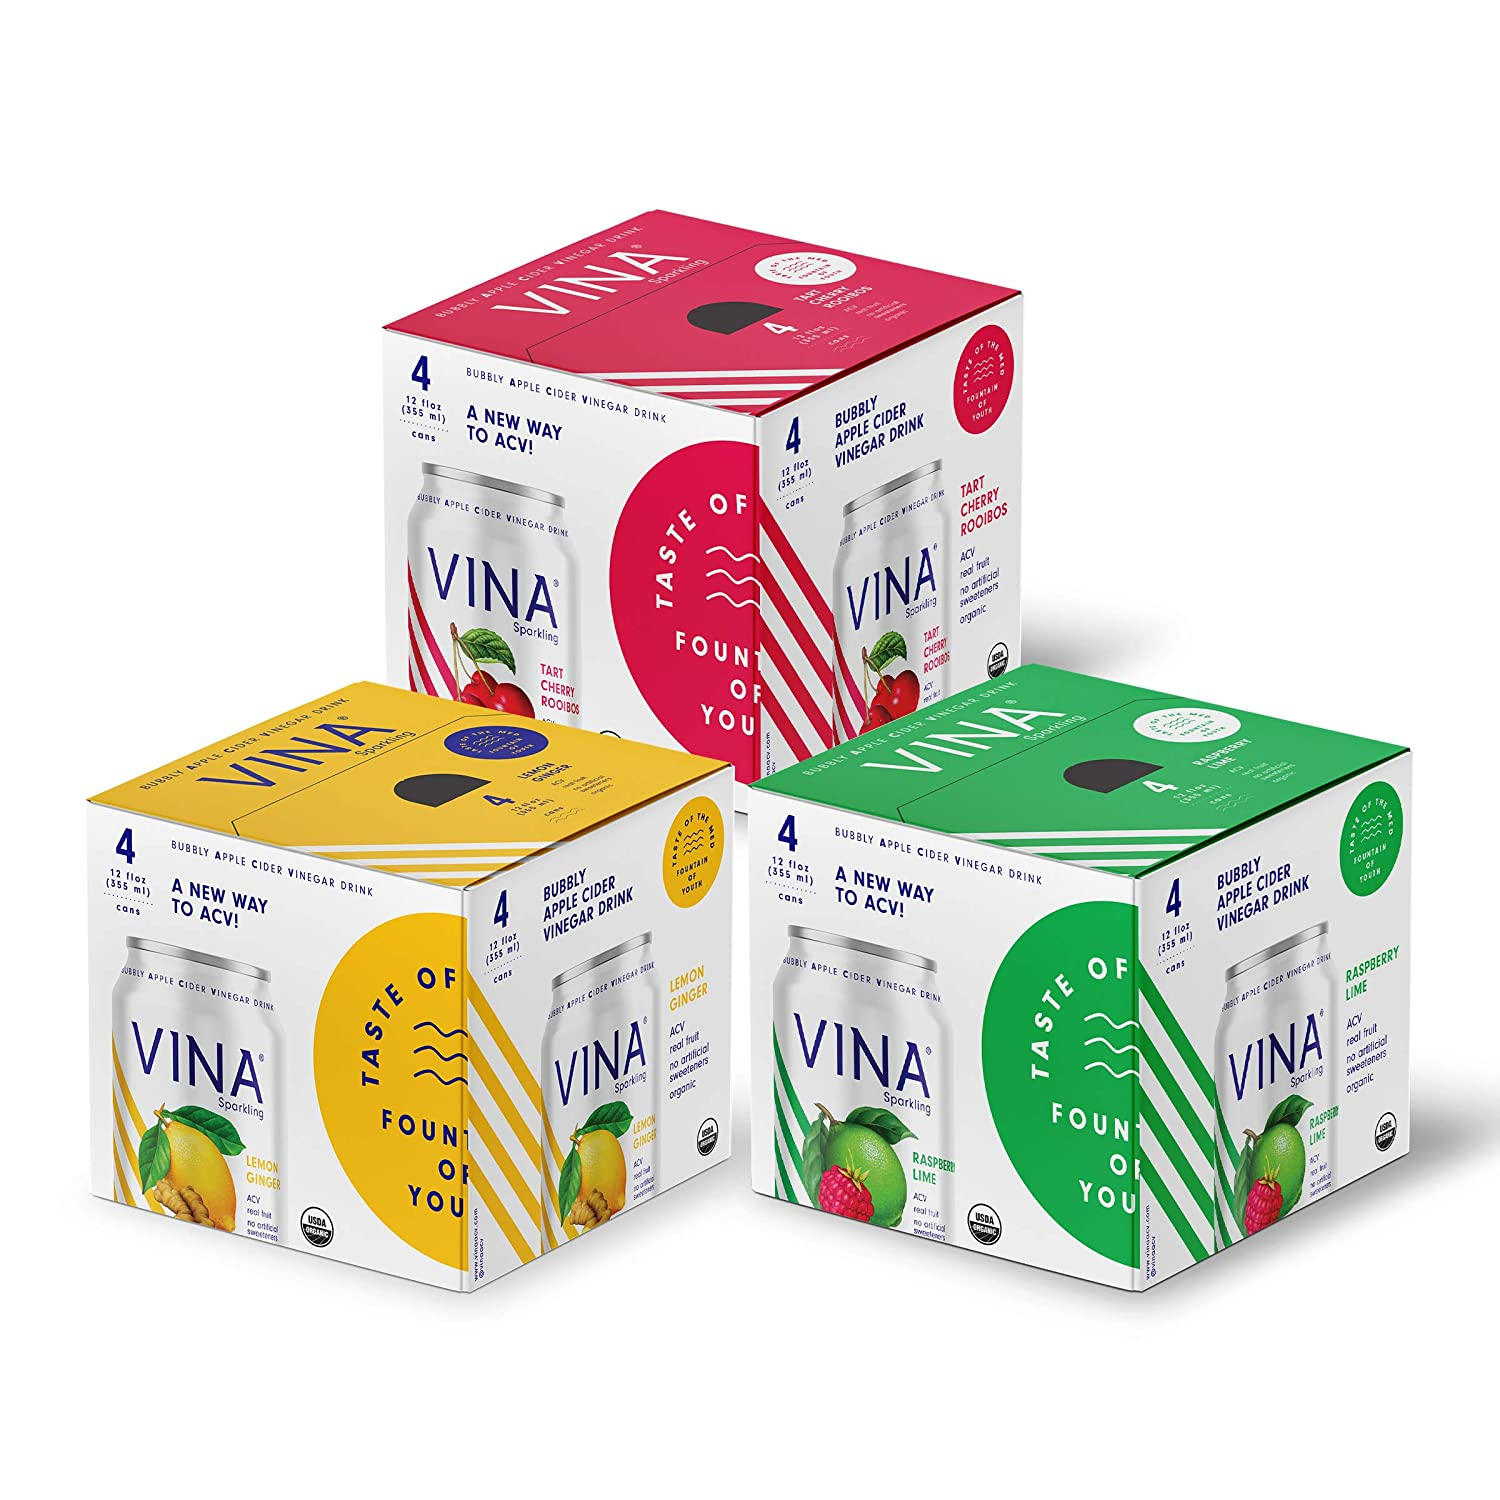 VINA Sparkling Apple Cider Vinegar Drink | Beachy Keen Variety Pack Made With Certified Organic Apple Cider Vinegar, Real Fruit, Sparkling Water, No Artificial Sweeteners | 12 Fluid Ounce Cans